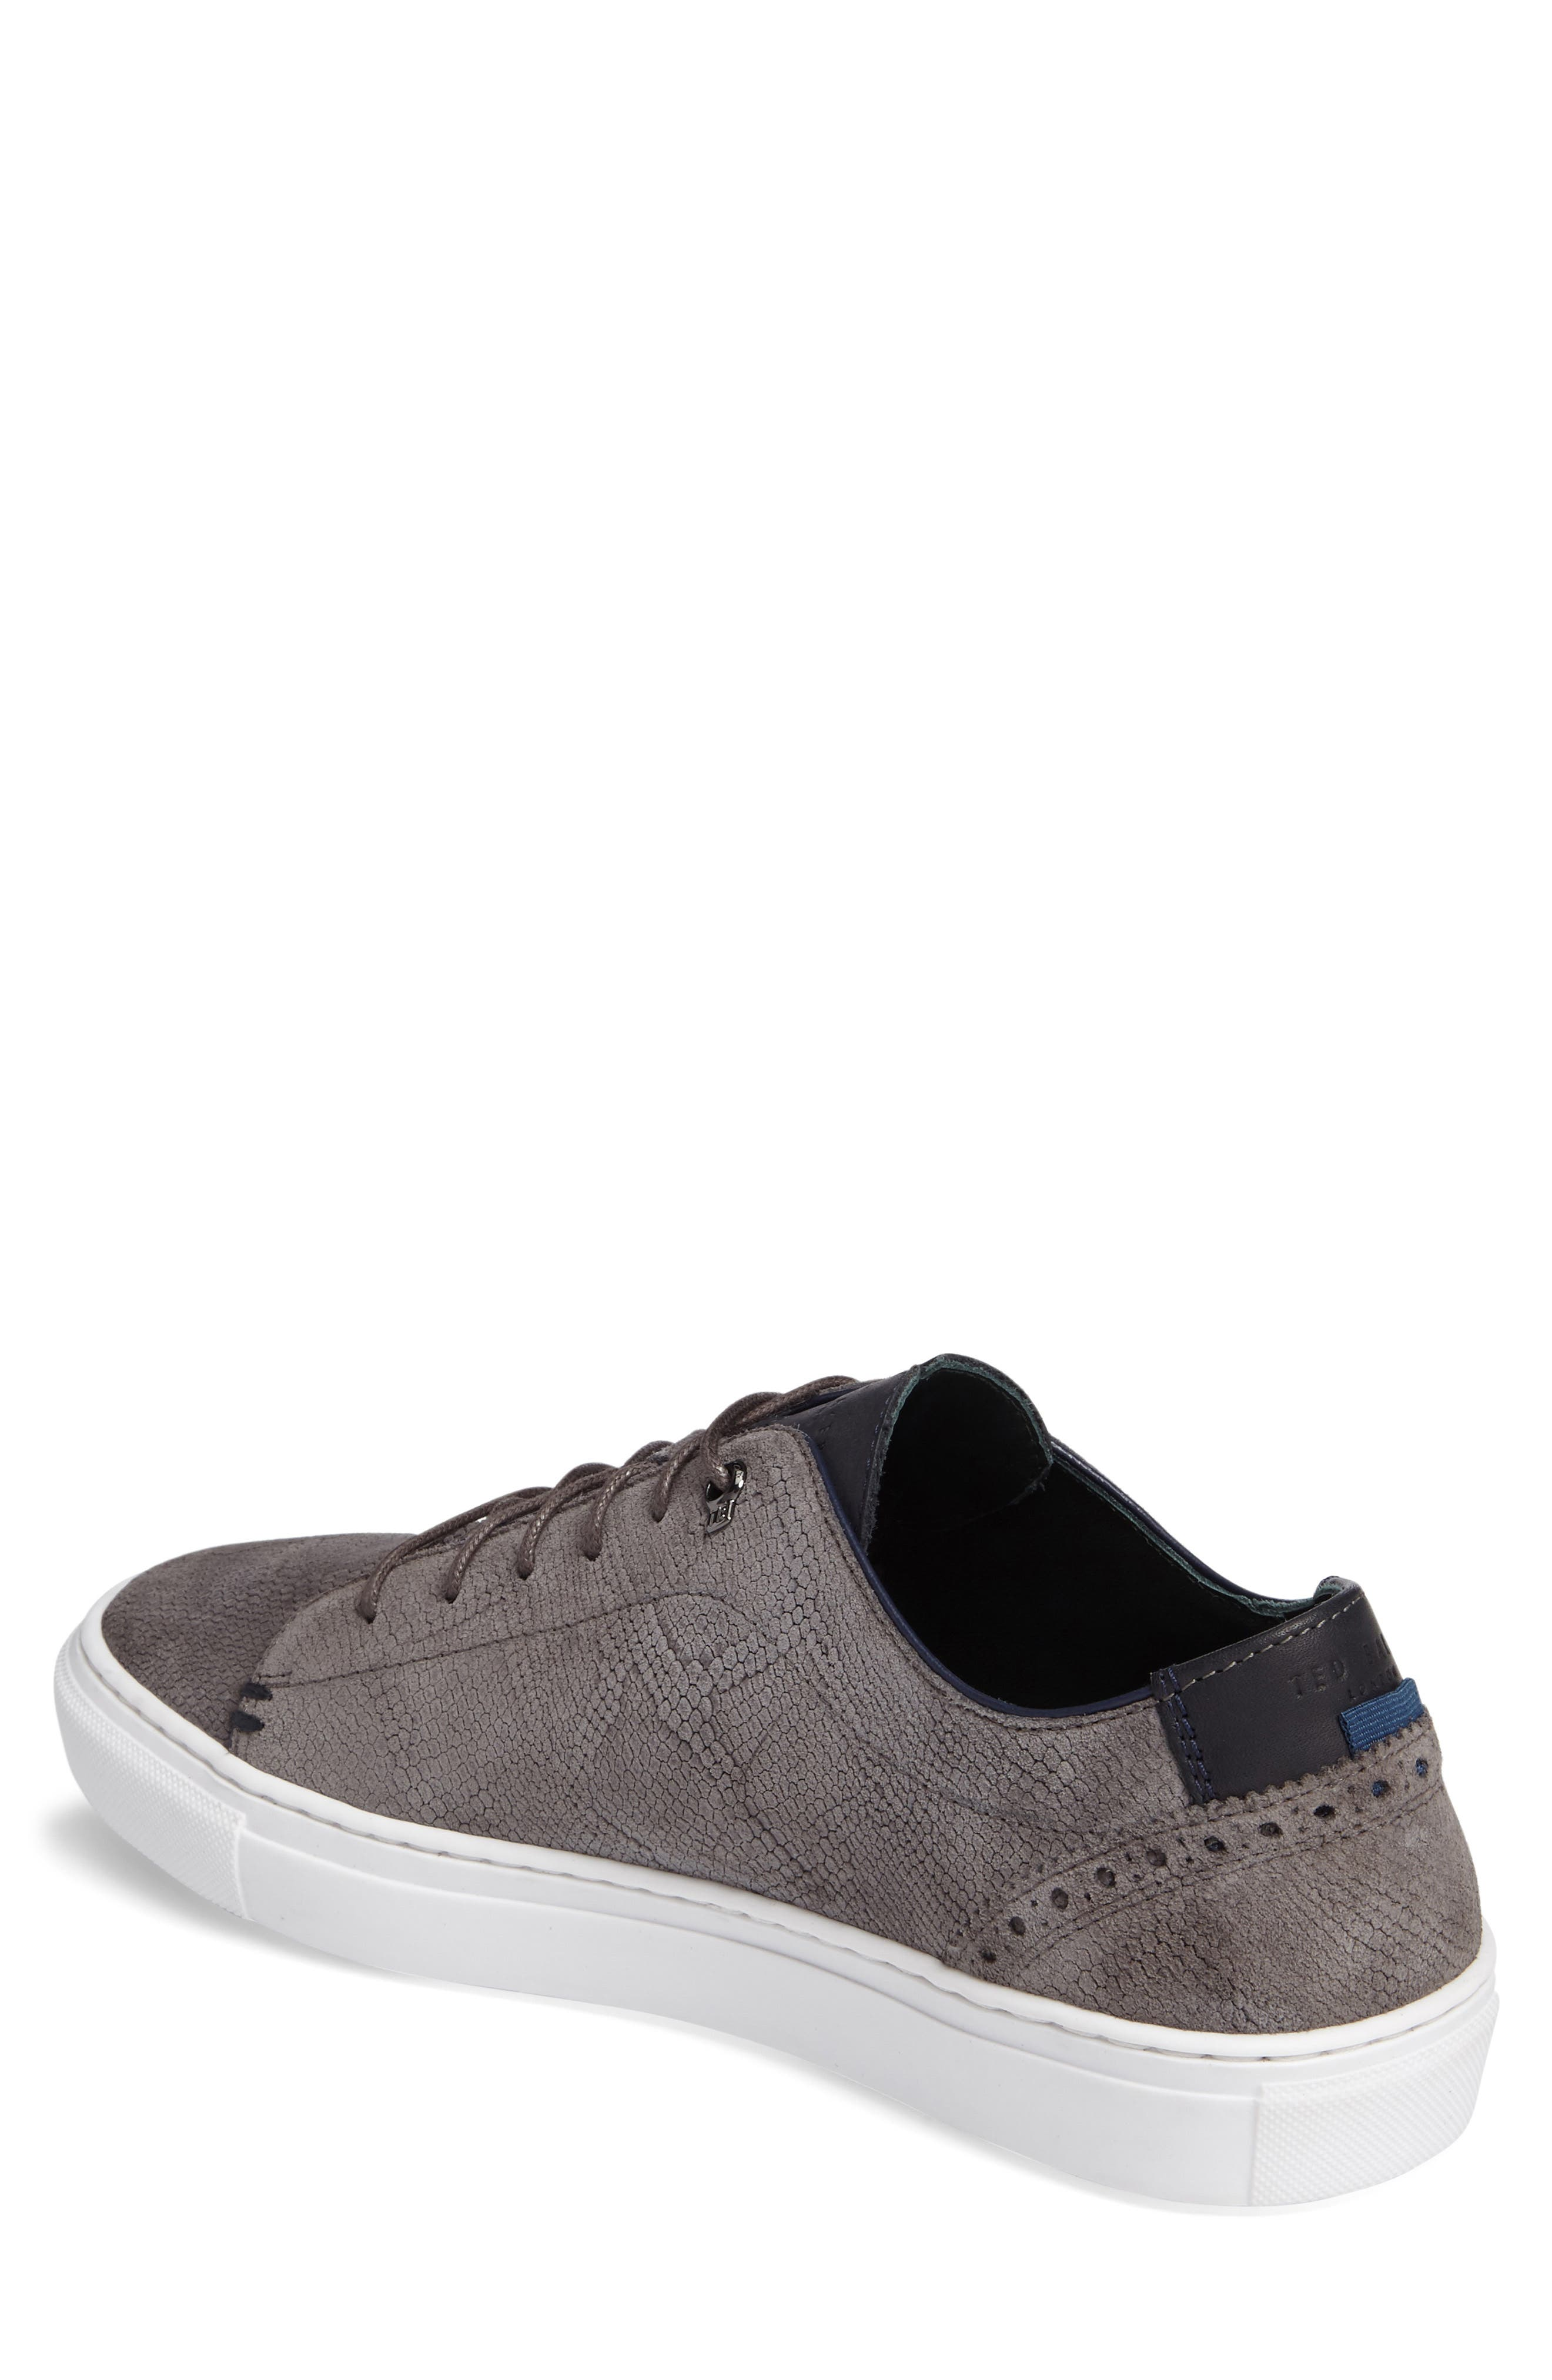 Duke Snake Embossed Sneaker,                             Alternate thumbnail 2, color,